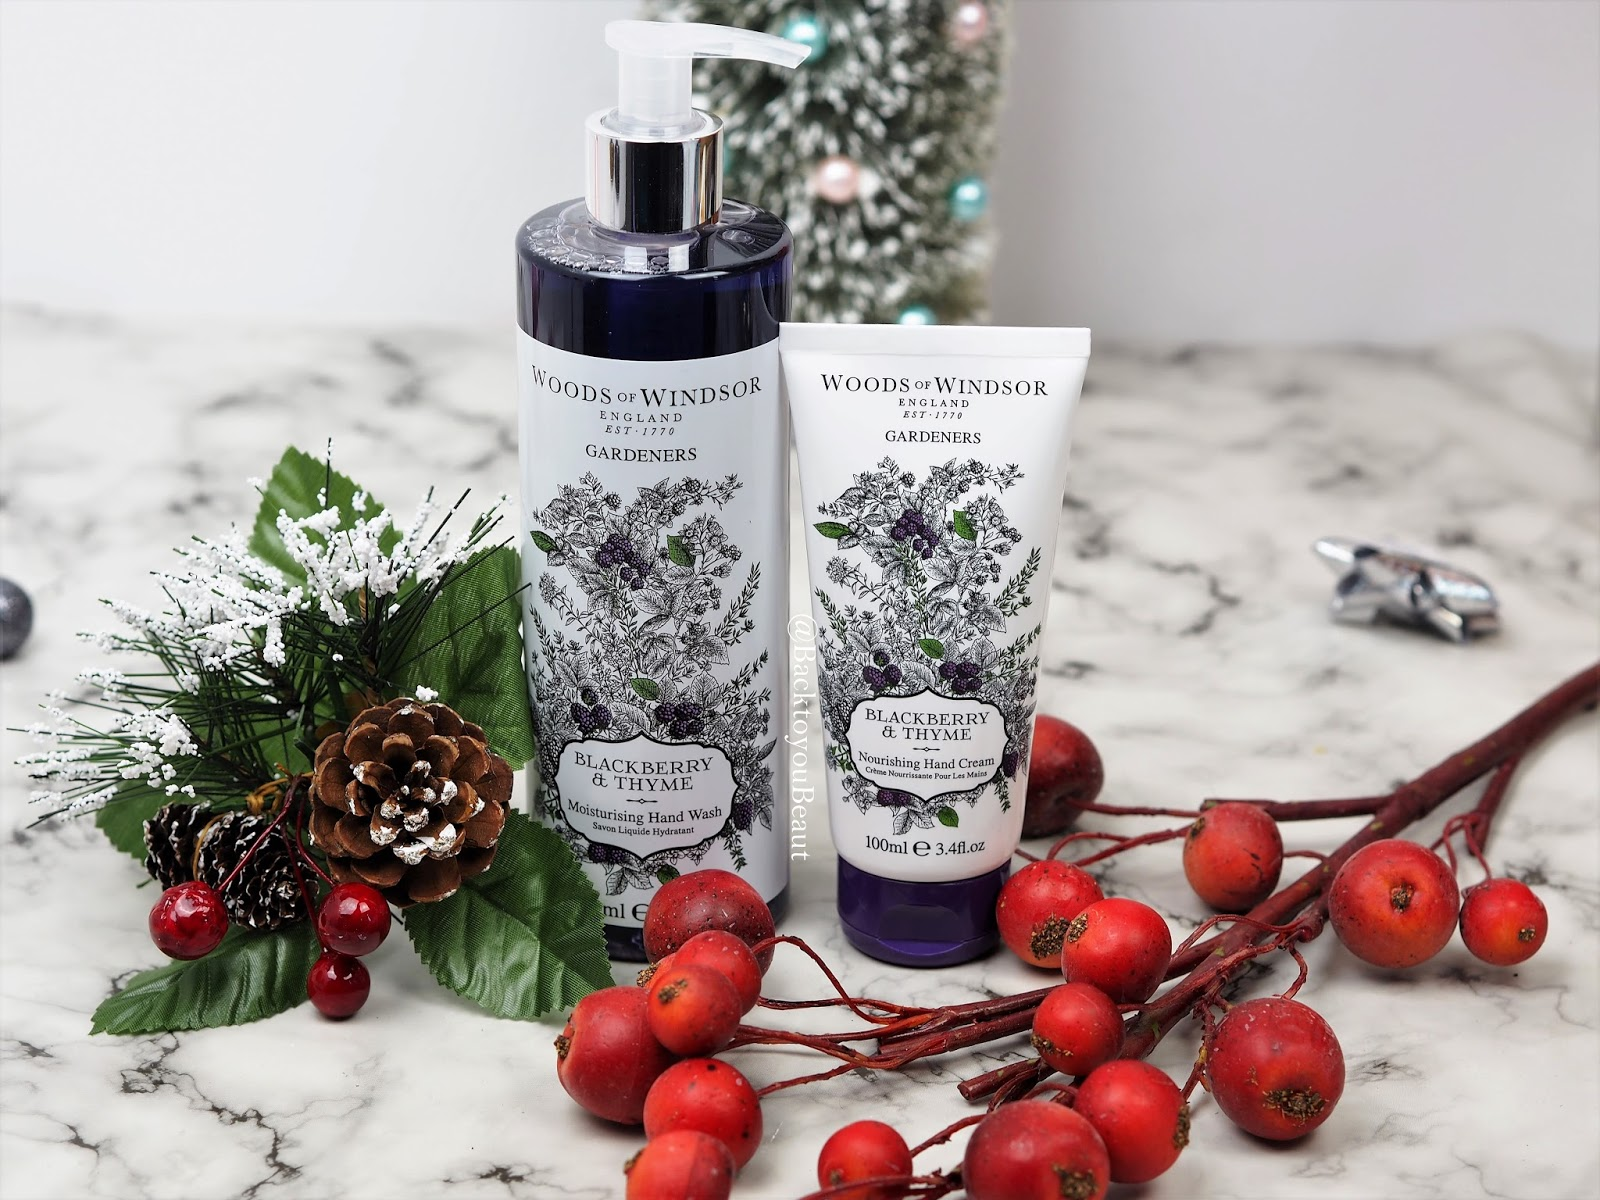 Woods of Windsor Blackberry & Thyme Moisturising Hand Wash and Nourishing Hand Cream